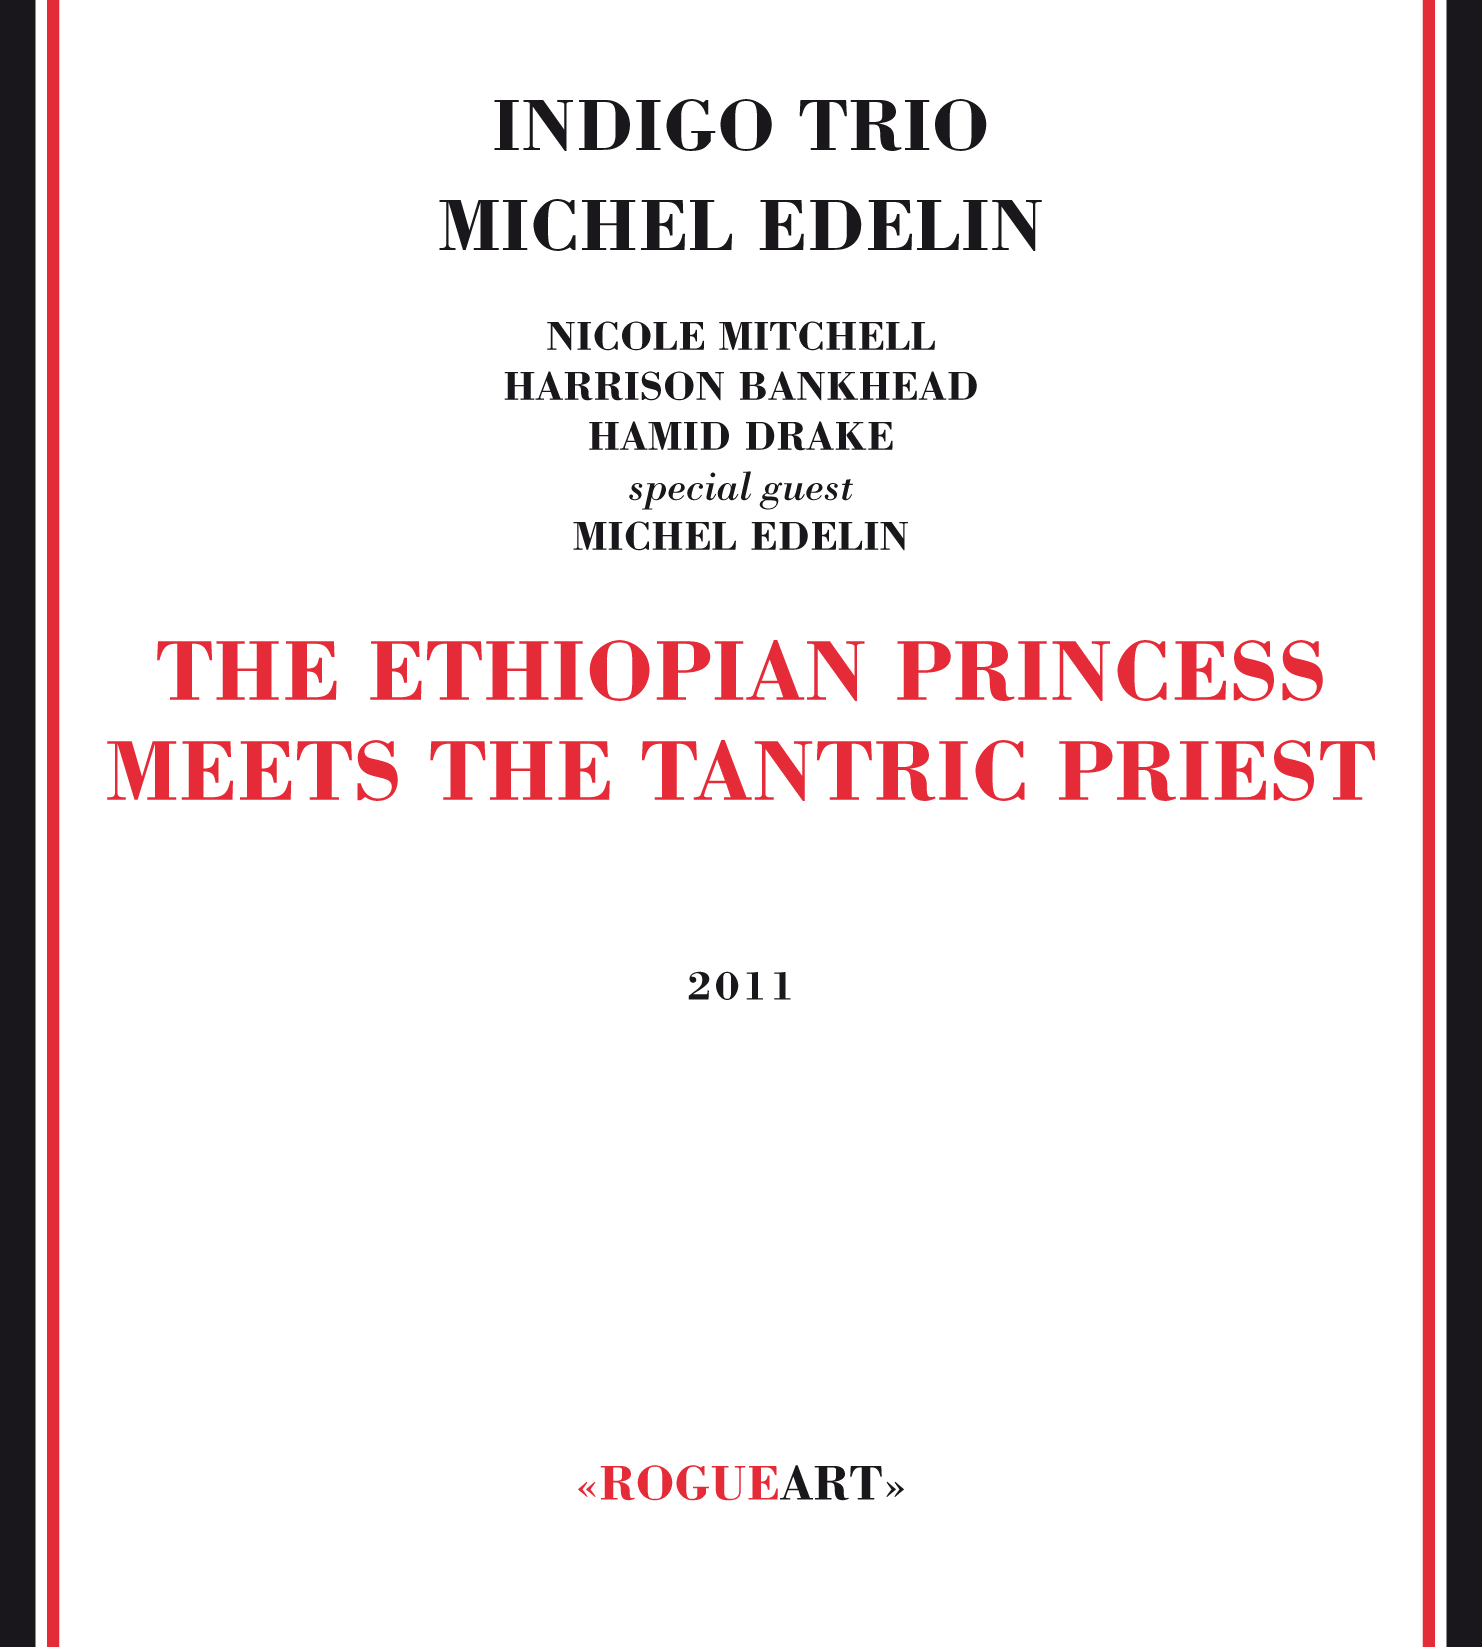 Front cover of the album THE ETHIOPIAN PRINCESS MEETS THE TANTRIC PRIEST